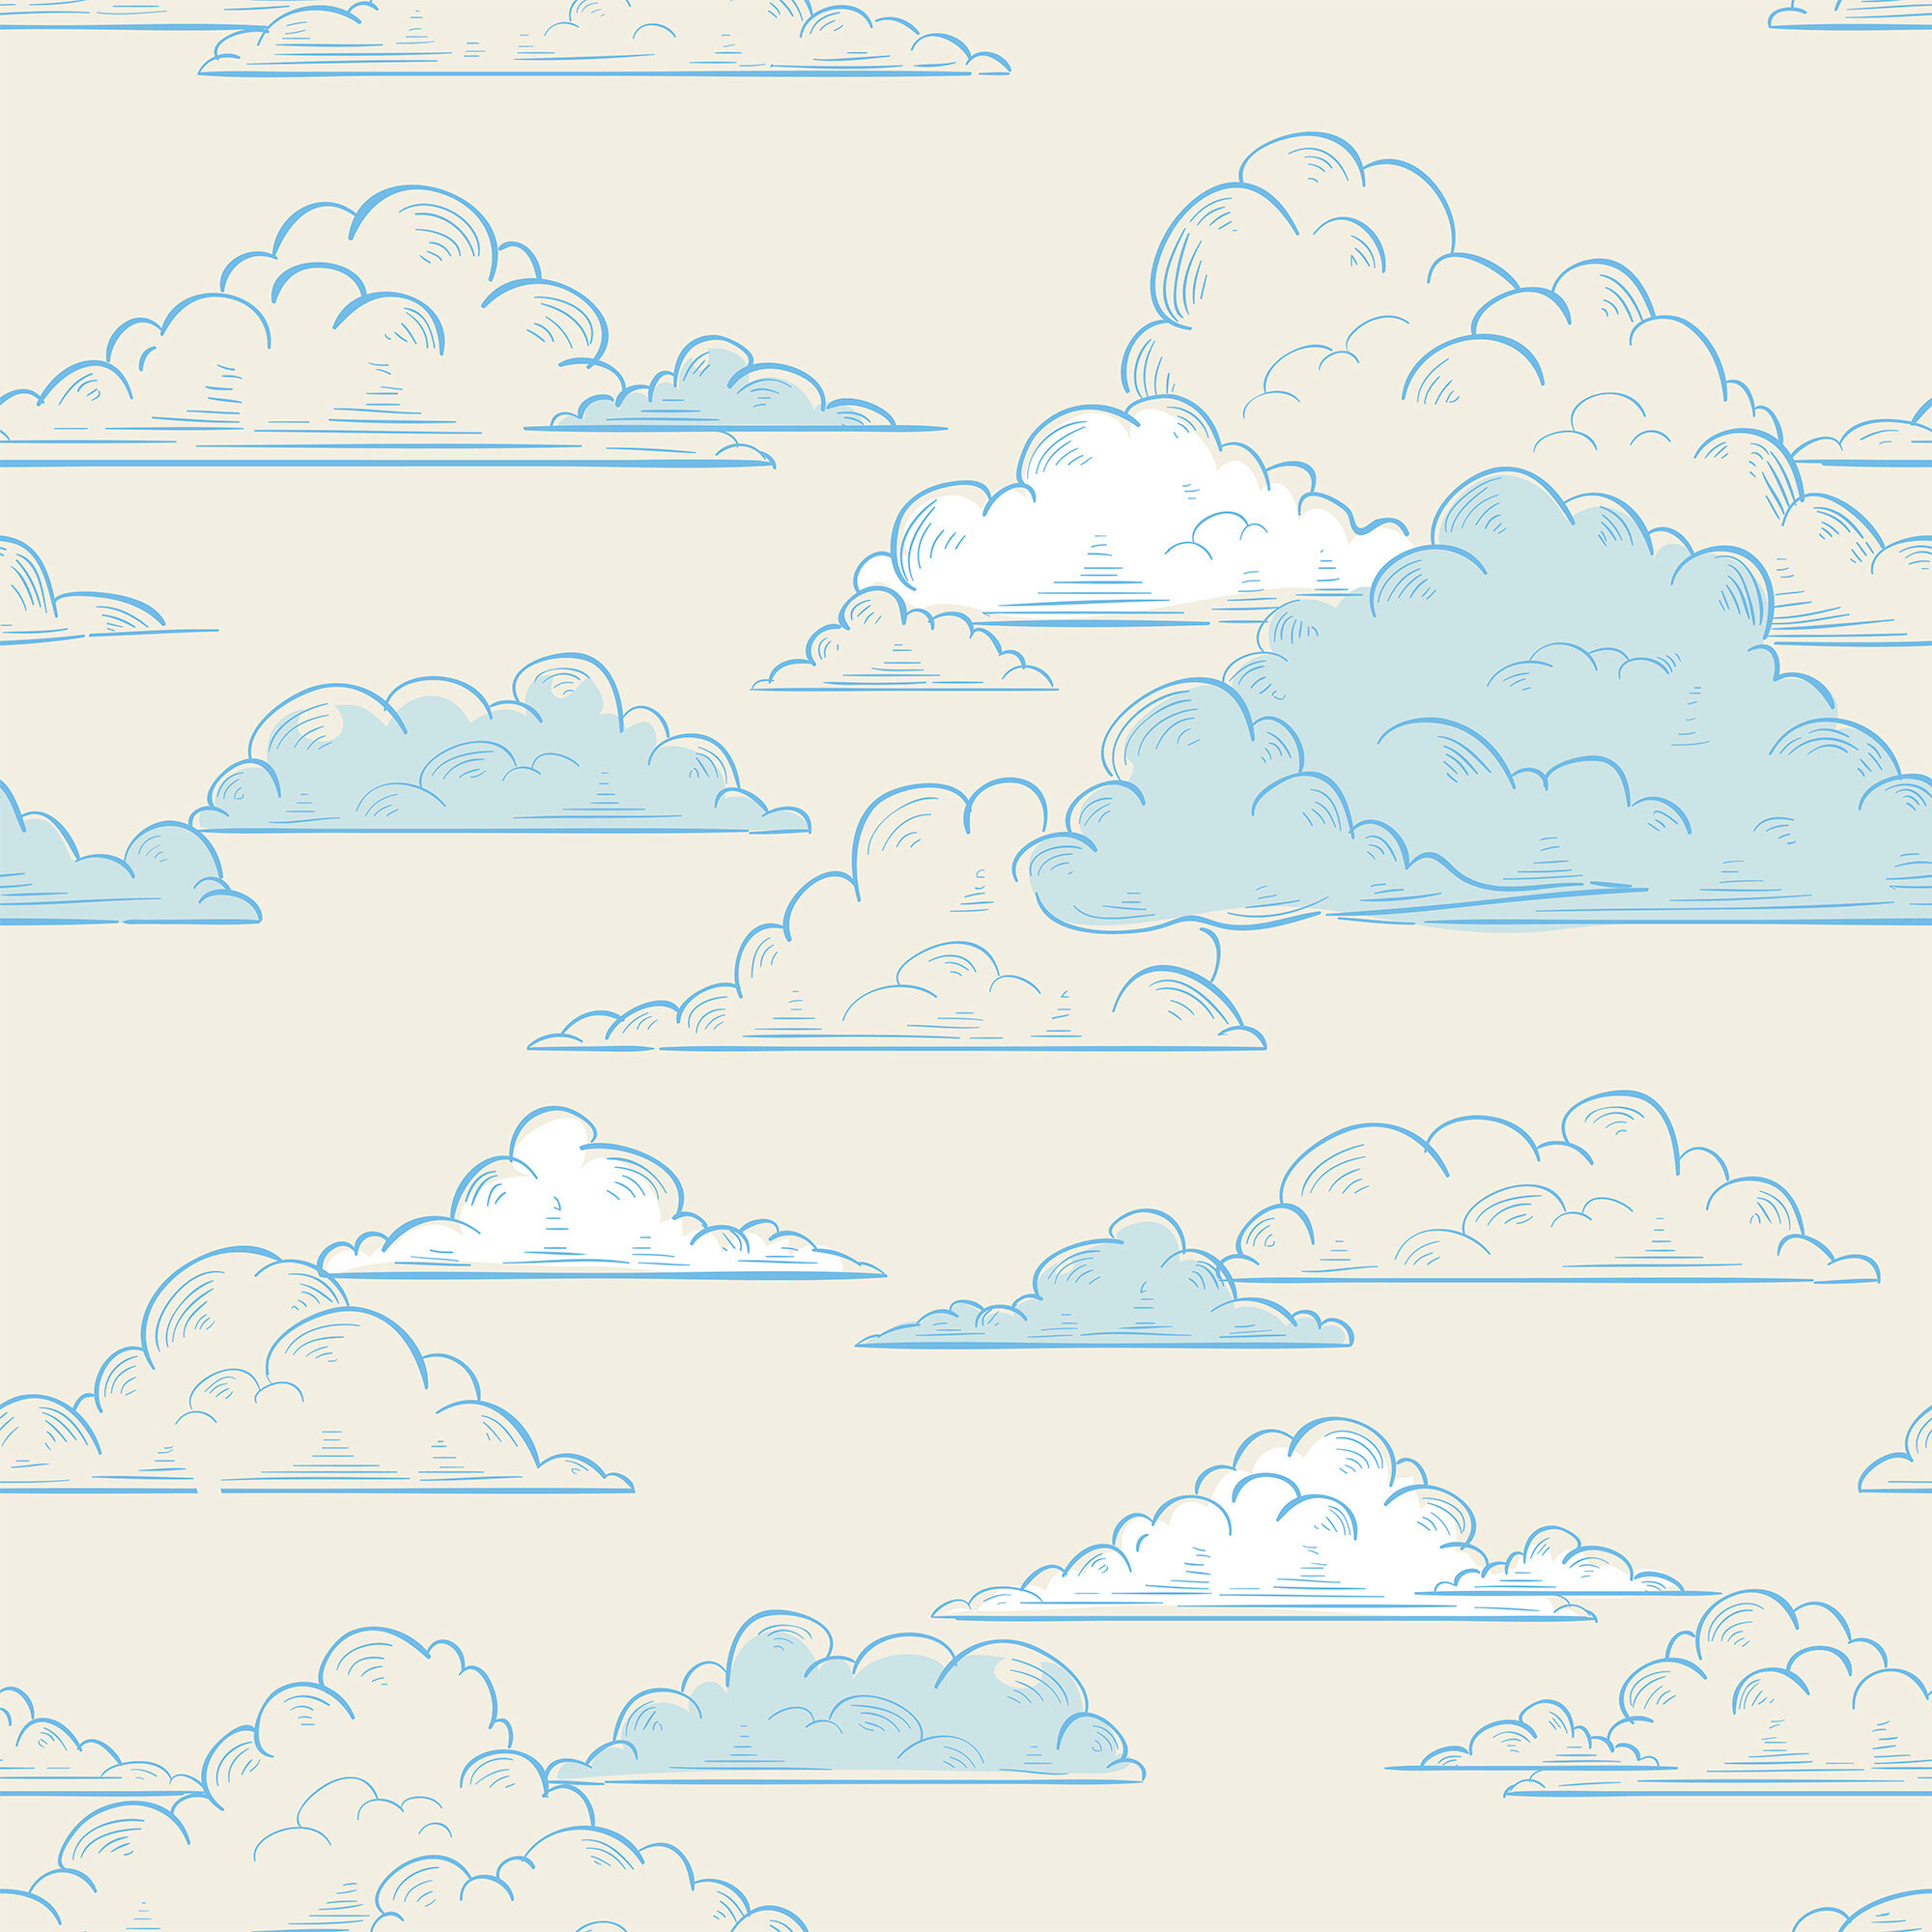 Red Barrel Studio Kearse Clouds Children Removable Peel And Stick Wallpaper Panel Wayfair